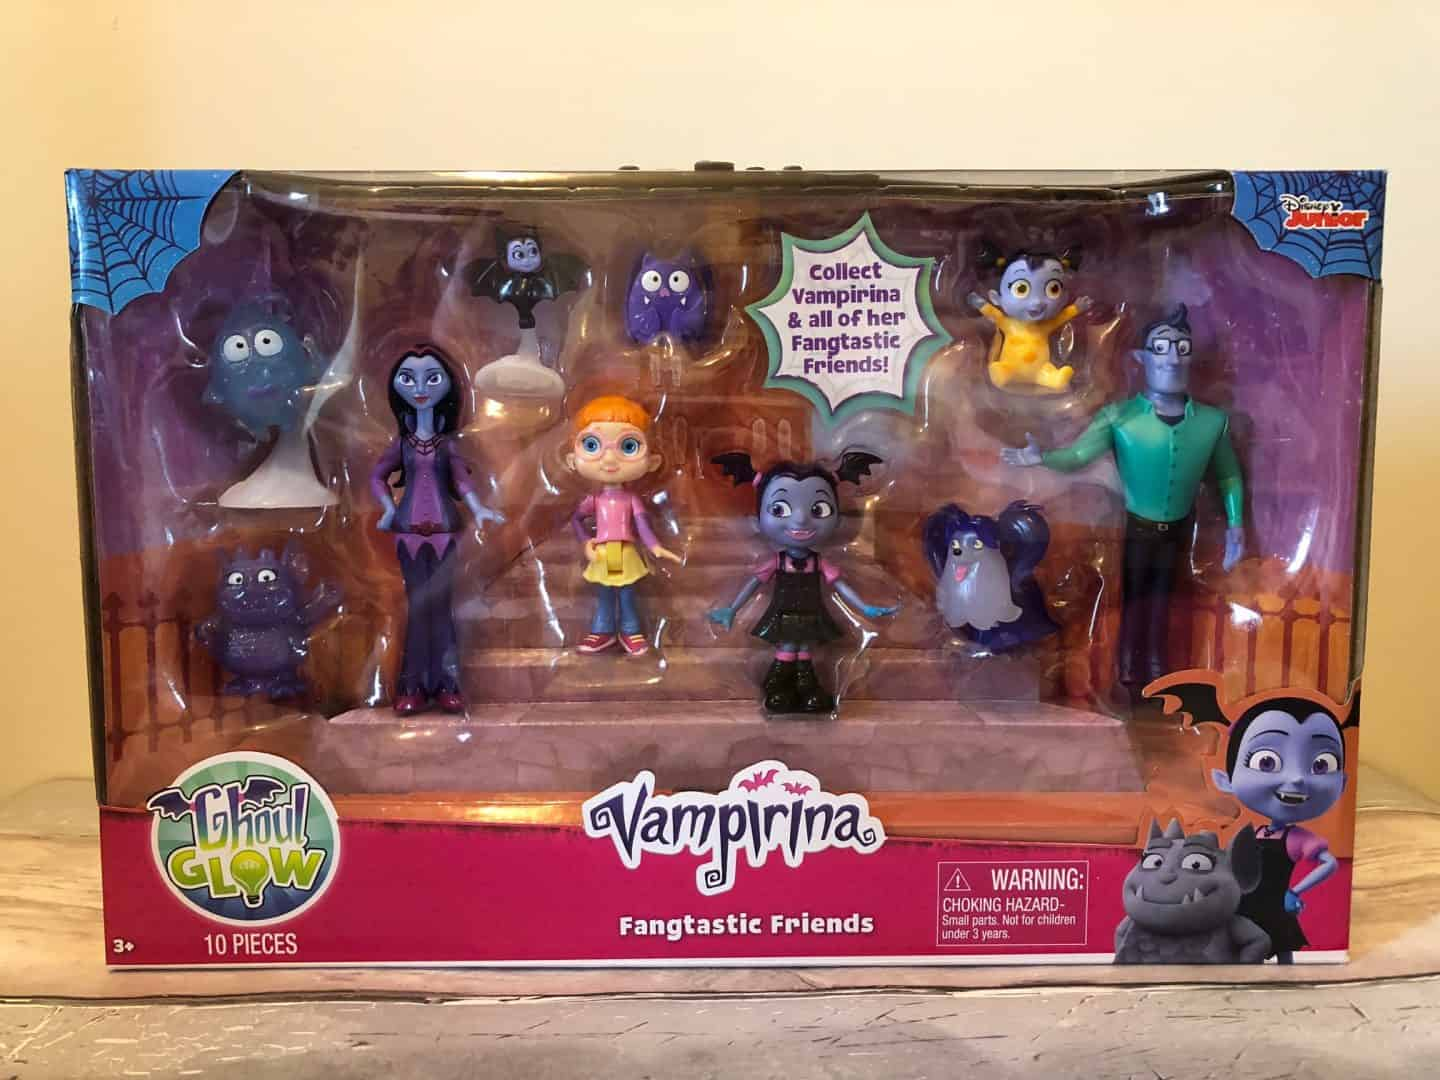 Vampirina Fangtastic Friends Set – EXISTING ITEM - £29.99 – The set comes with 10 characters from the show. Each figure features ghoulishly fun glitter accents or poseable arms, perfect for encouraging imaginative play. Kids will love bringing the world of Disney Junior's Vampirina to life!